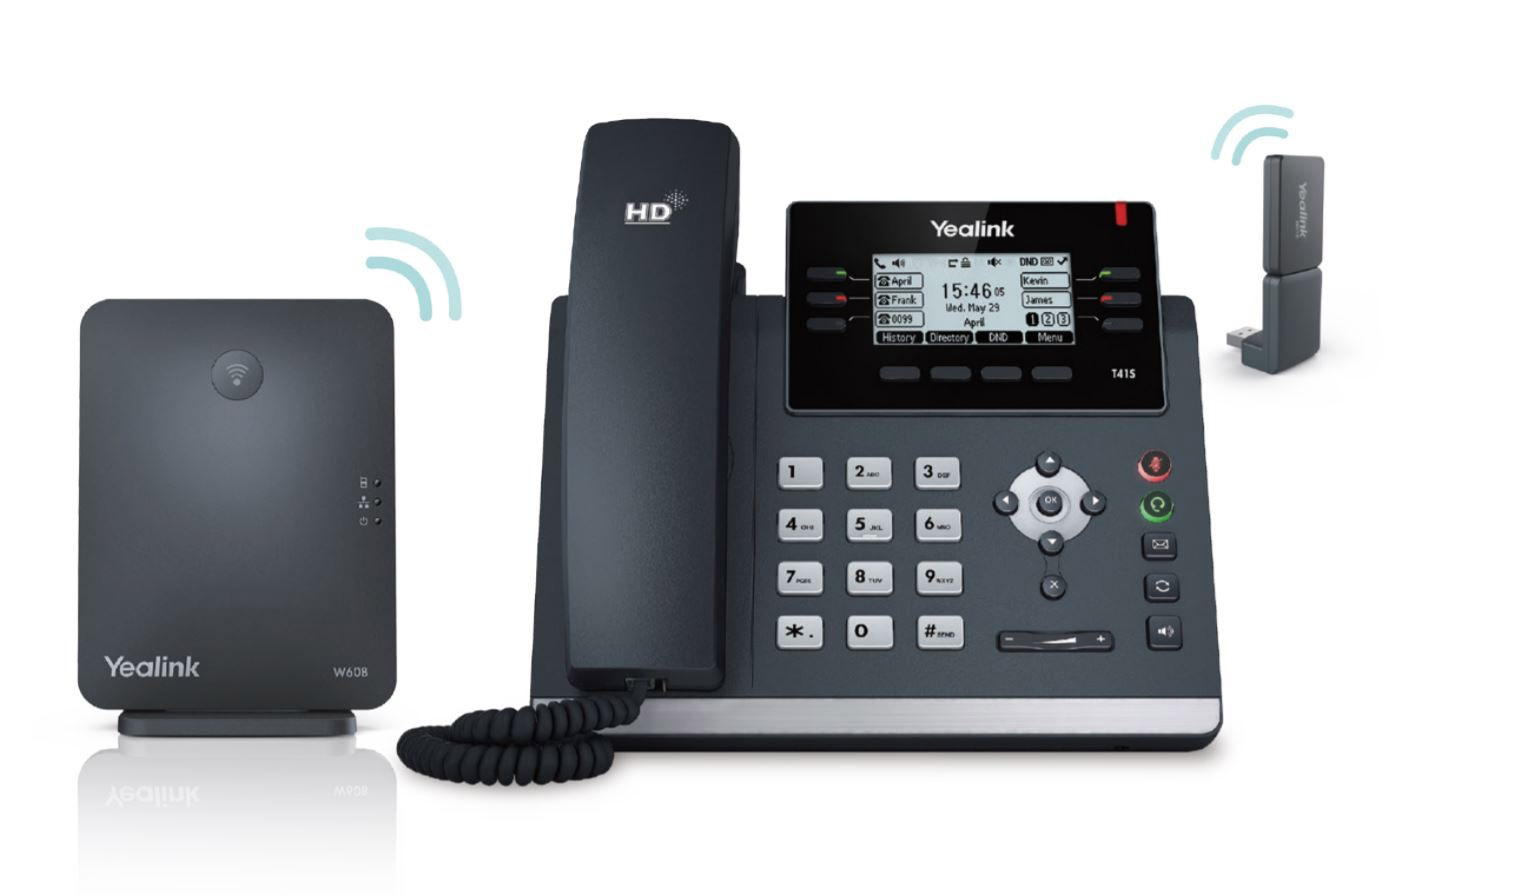 Yealink W41P DECT system with W60B base station, T41S IP desk phone and DD10K DECT USB dongle